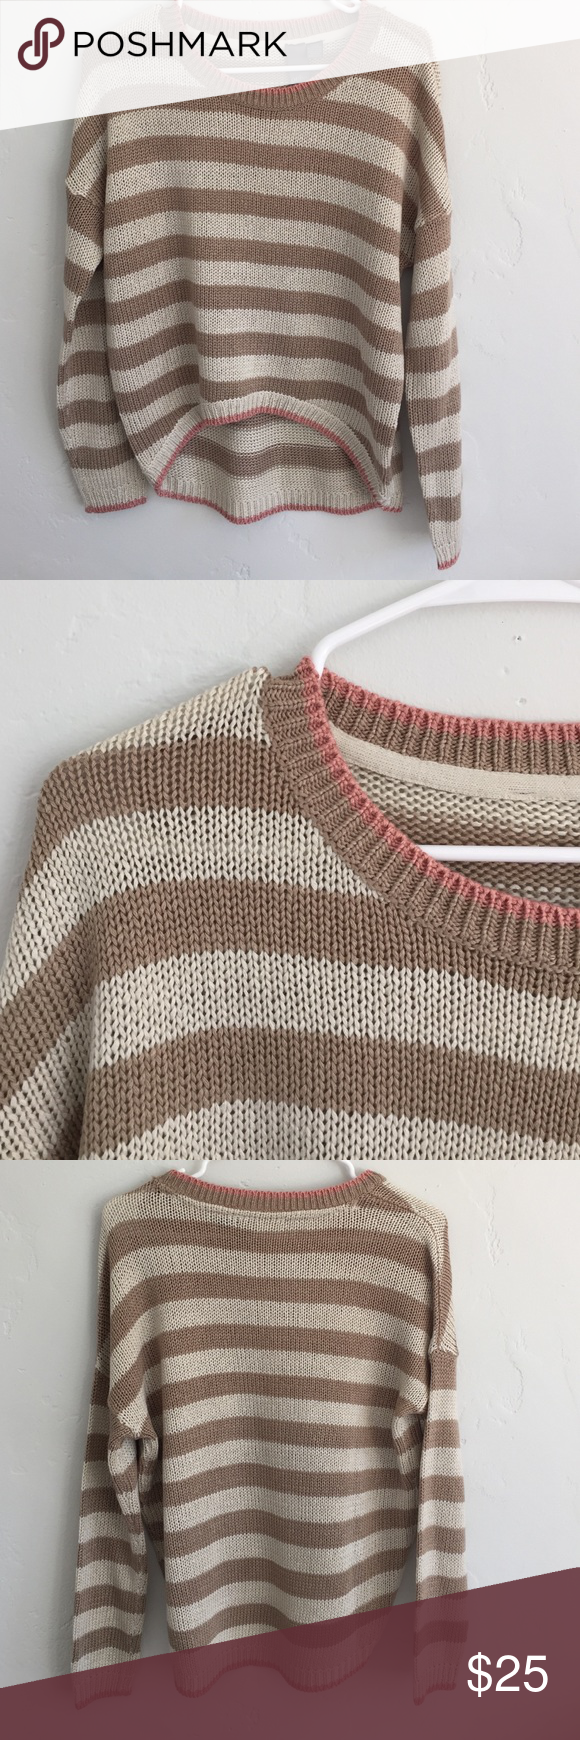 White and light brown striped sweater. This is a gorgeous light ...